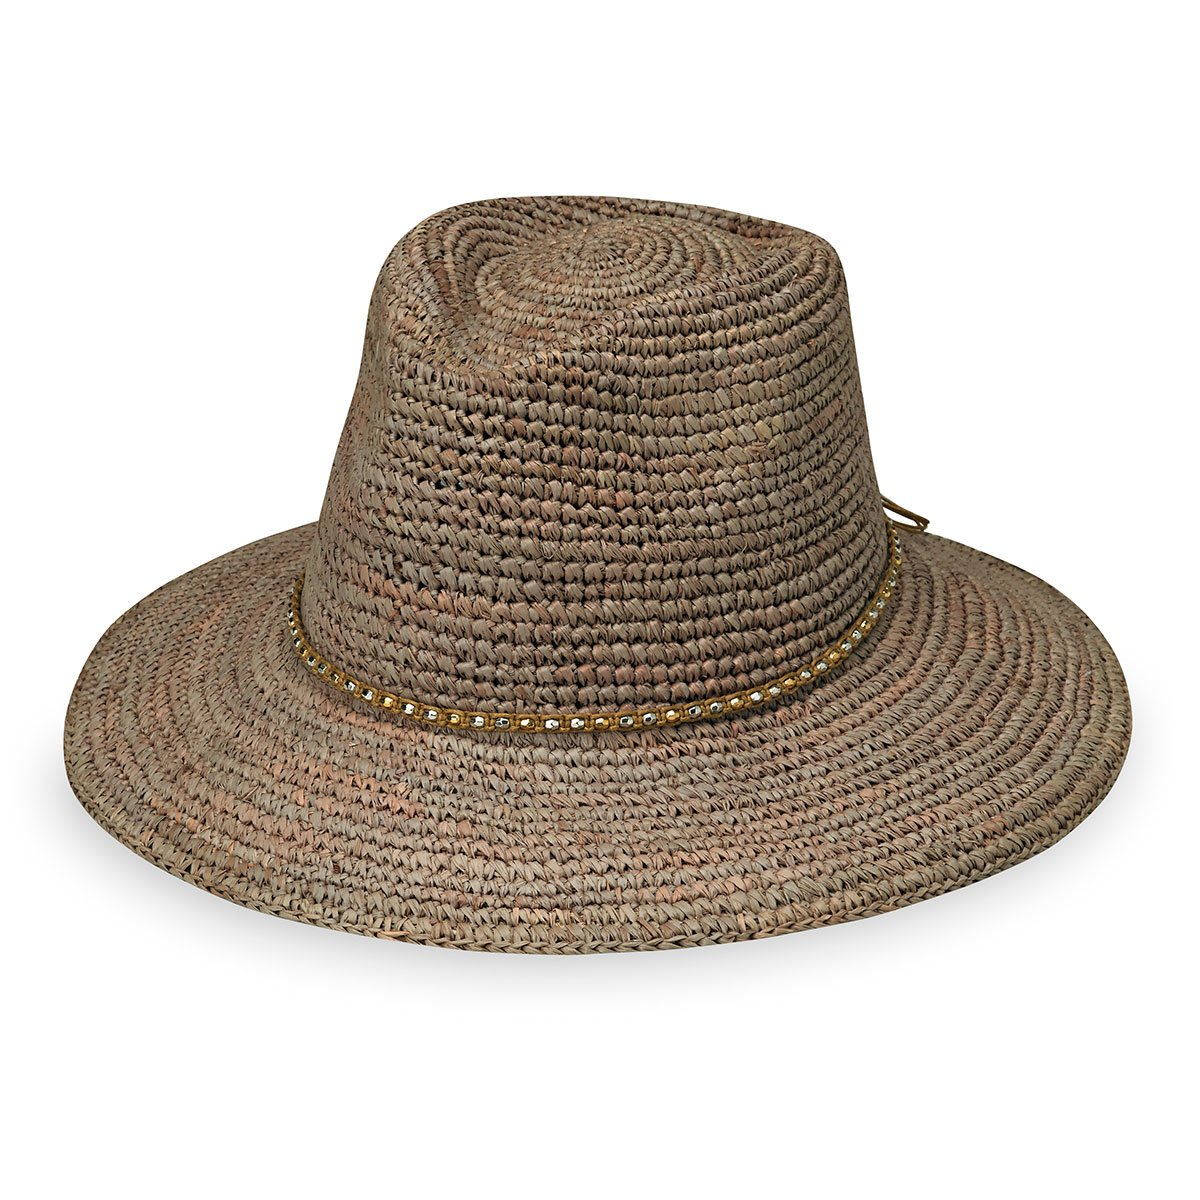 Wallaroo Hat Company Women's W Collection Malibu Fedora - Mushroom - Raffia by Wallaroo Hat Company (Image #1)